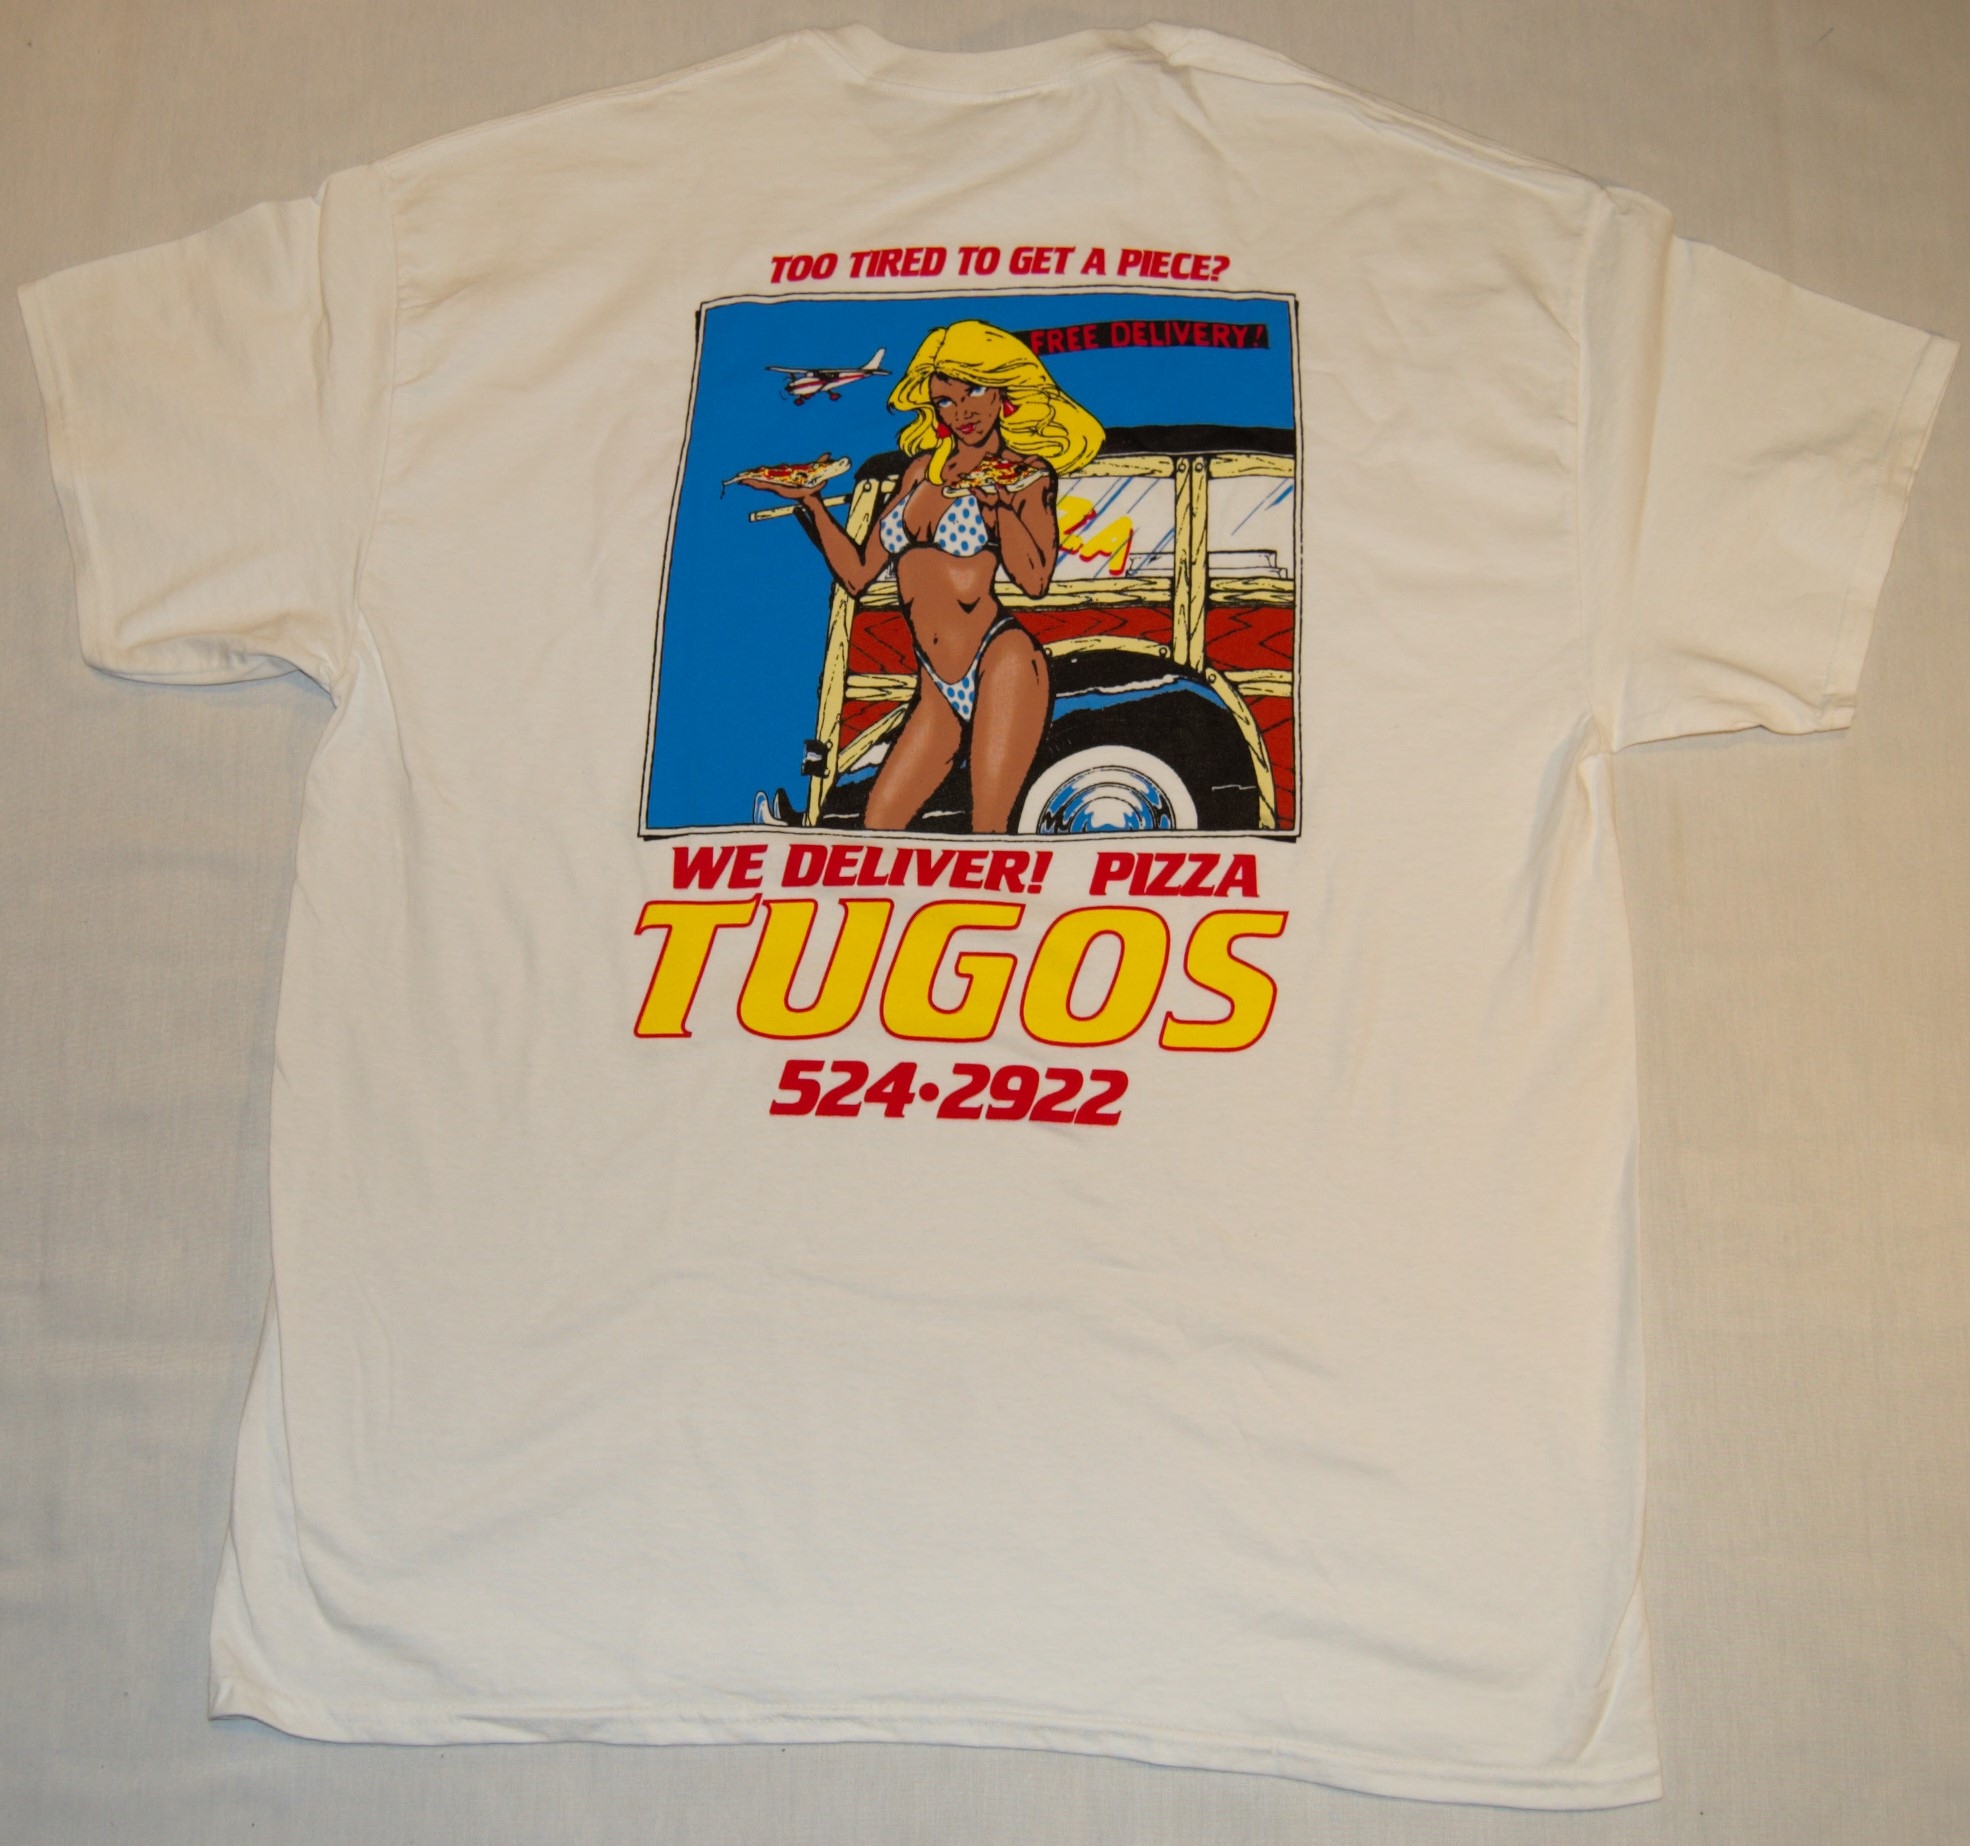 Pizza Tugos Delivery Shirt Back